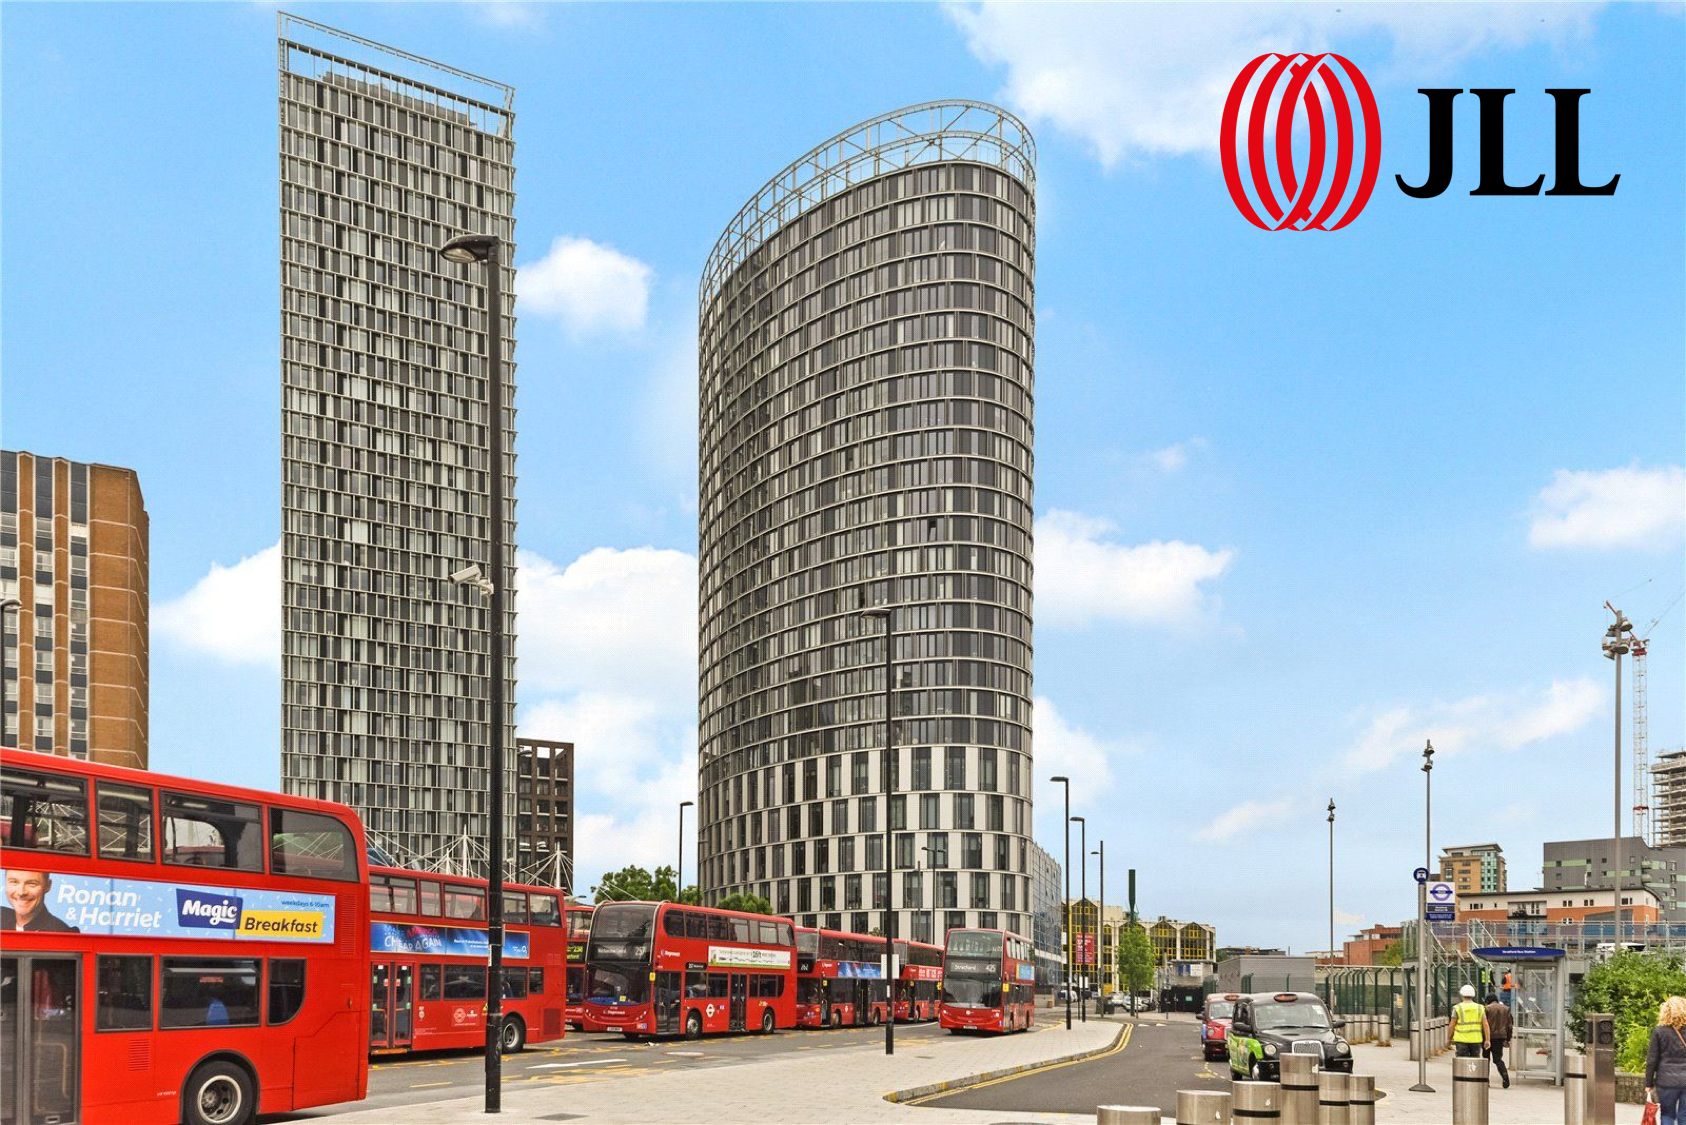 JLL launches ADAM for Stratford & Canary Wharf - Adam has assisted the Property Managers at JLL automate repair requests.